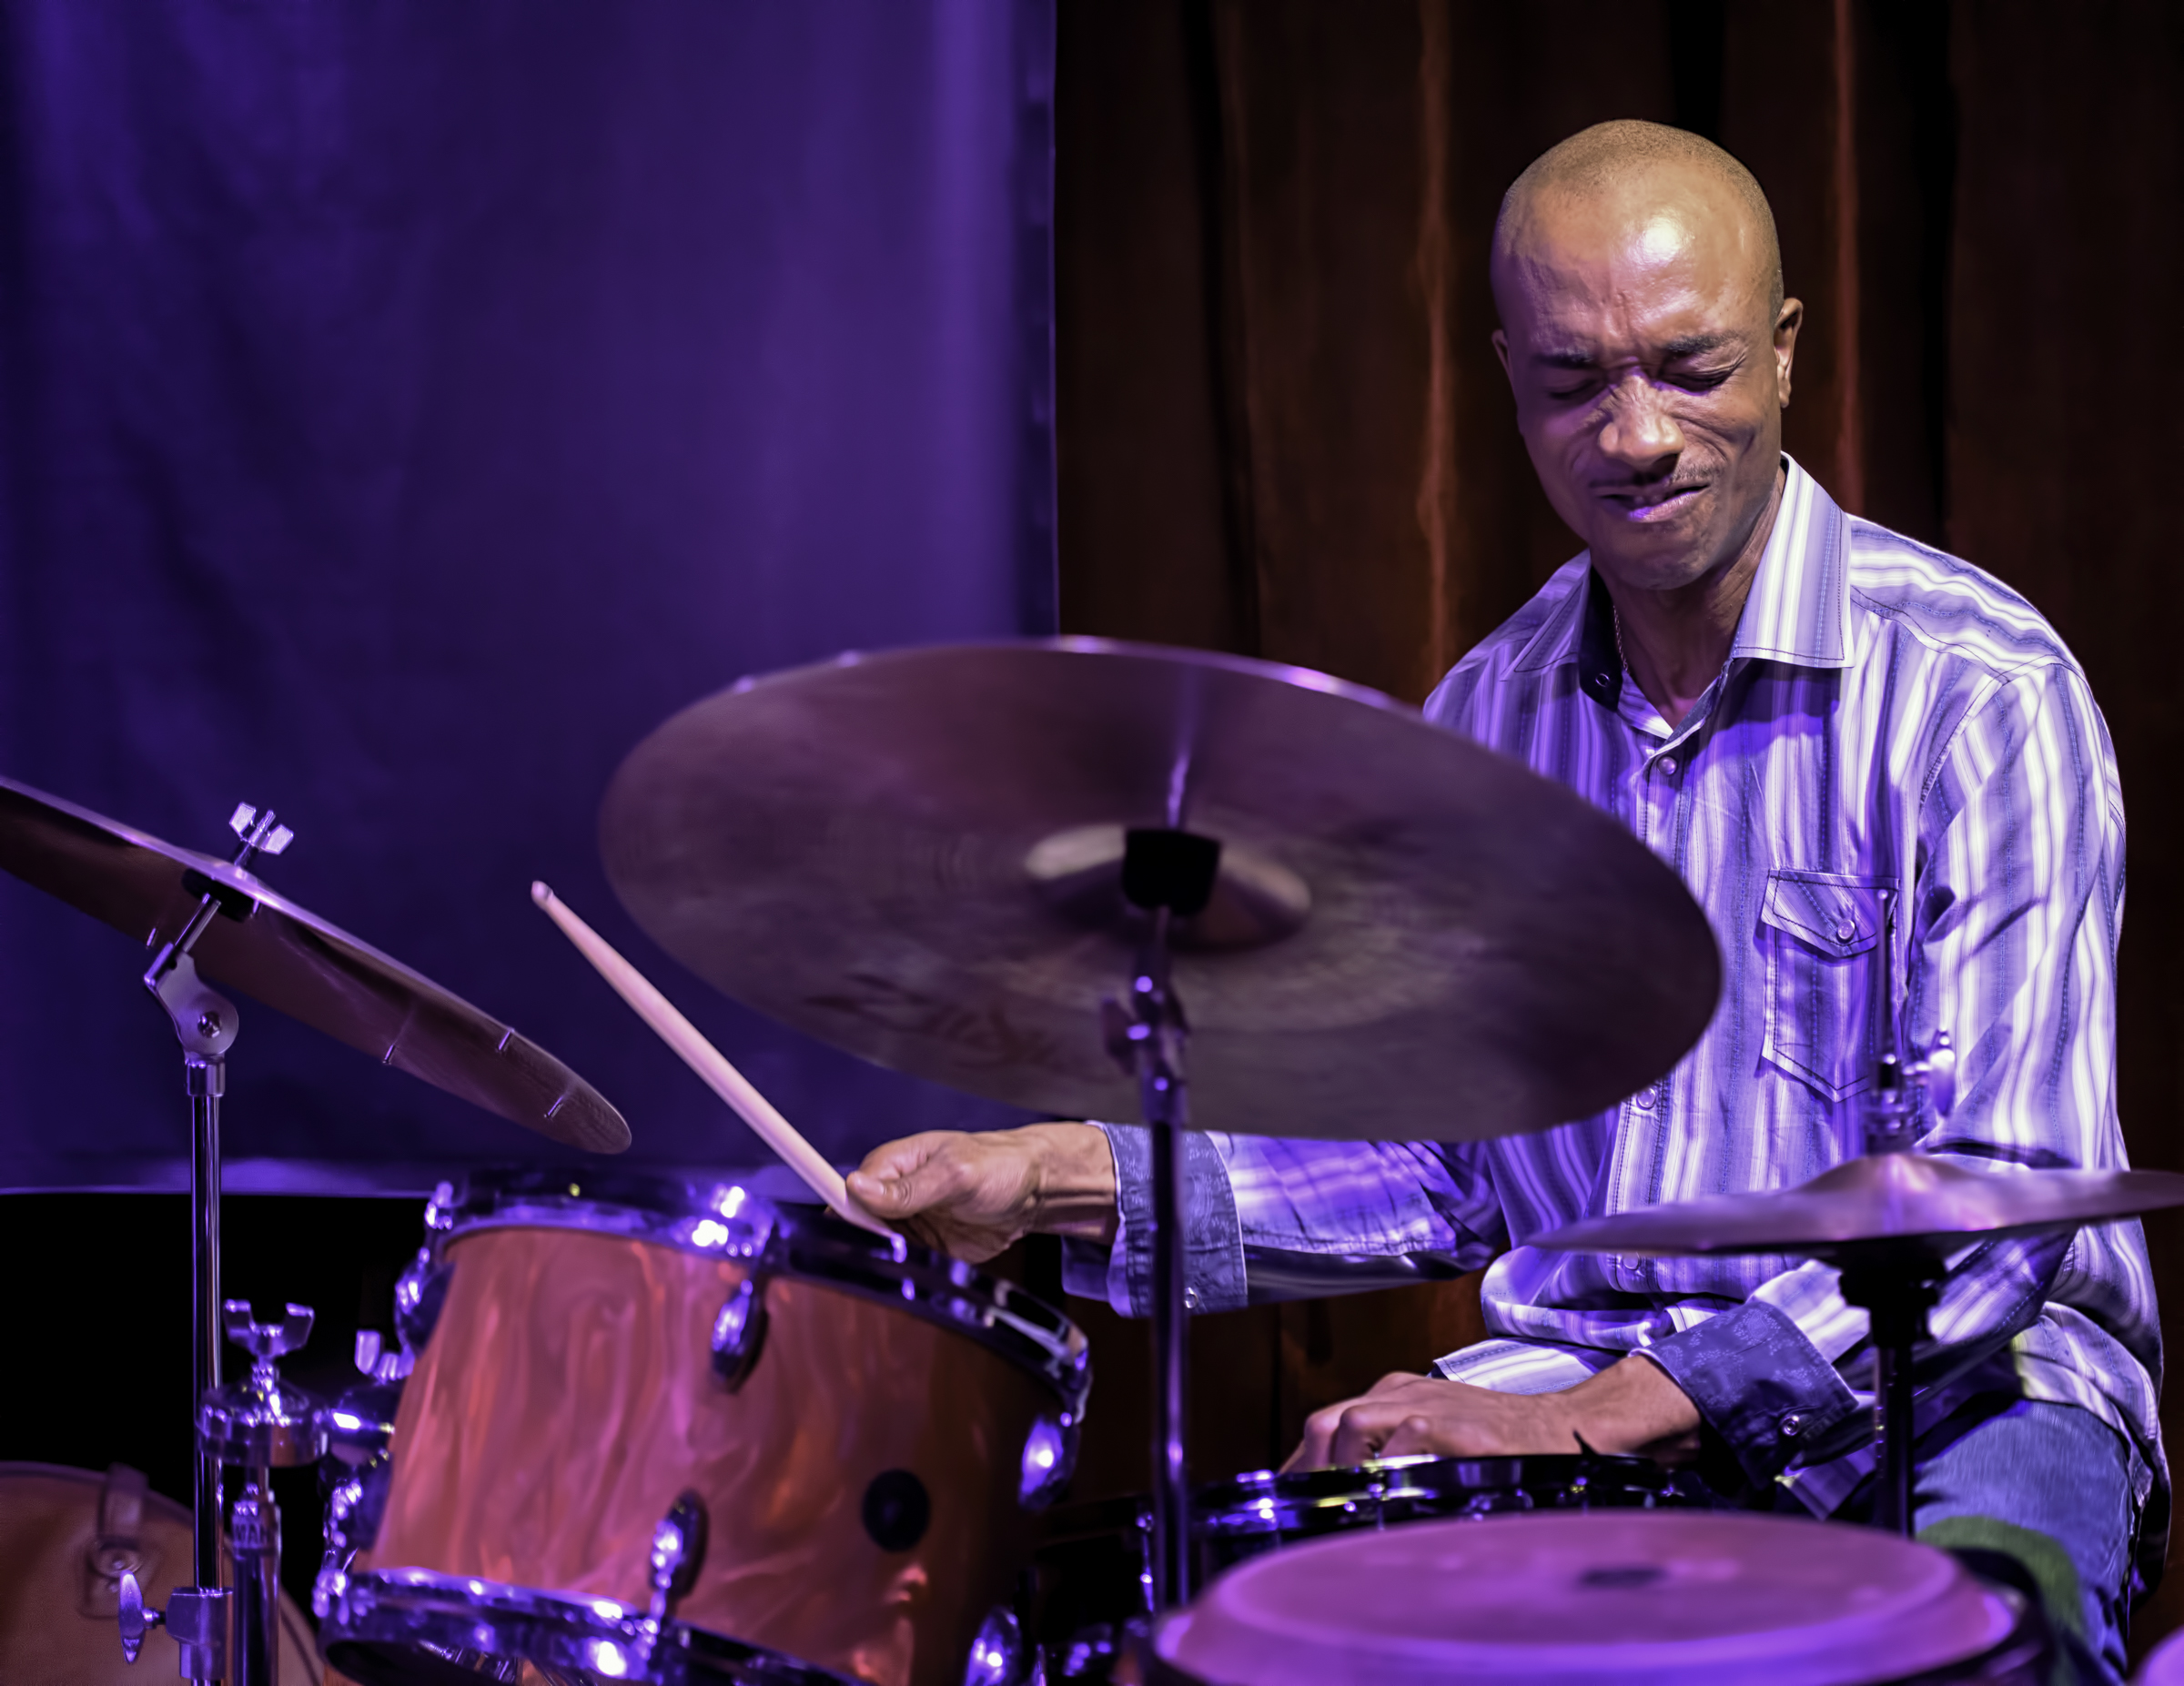 Eric McPherson with Ravi Coltrane Presents Universal Consciousness: Melodic Meditations of Alice Coltrane at the Jazz Gallery